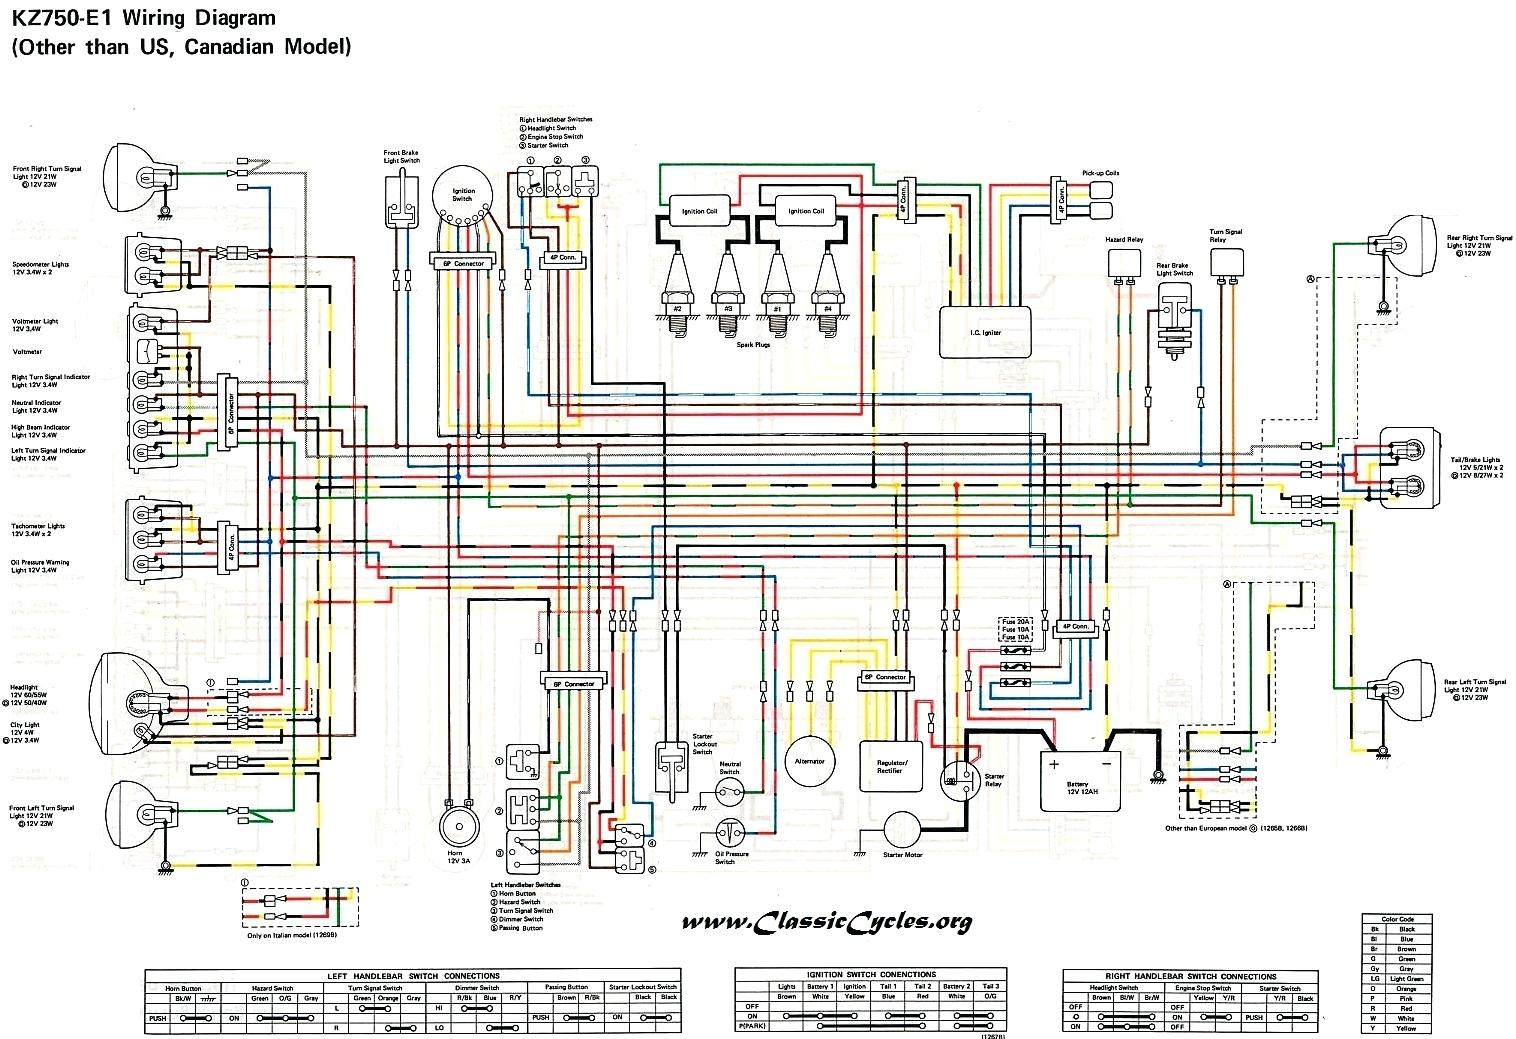 Four Wheelers Drawing At Free For Personal Use Wiring Diagram Software Mac 1516x1039 Circuit Maker Fantastic Images Electrical